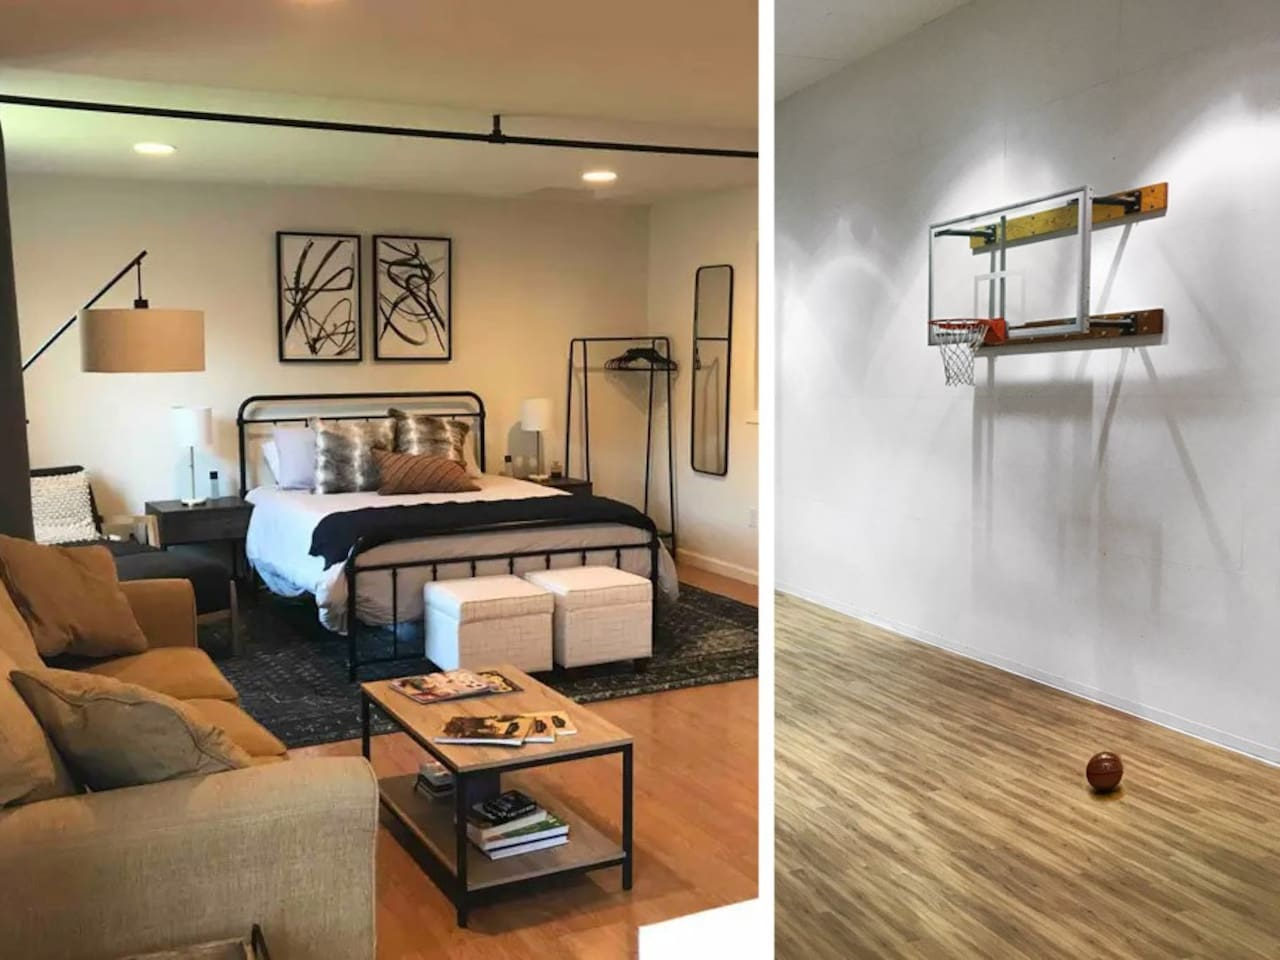 The loft is on the second floor, the bathroom and Sport Court are on the ground floor.  The Sport Court is a shared space but can usually be yours exclusively  if need be.   We have a short walk through video,  please message us for the link.